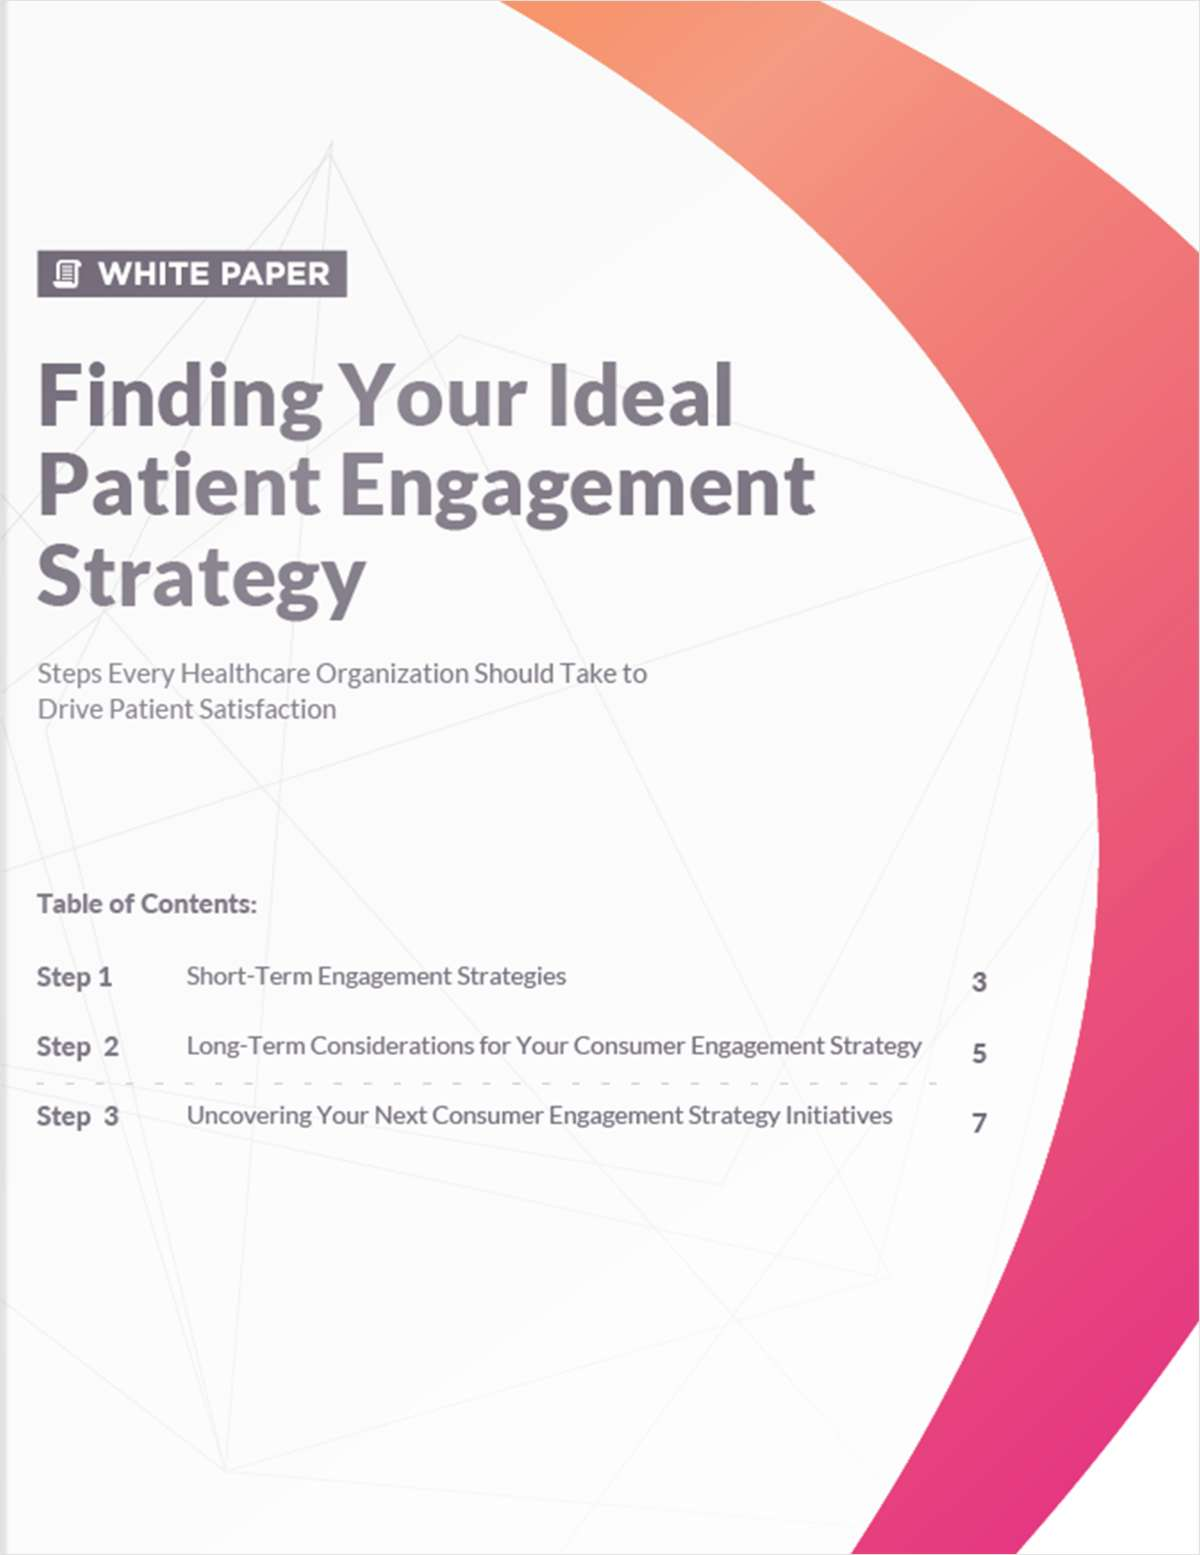 Finding Your Ideal Patient Engagement Strategy